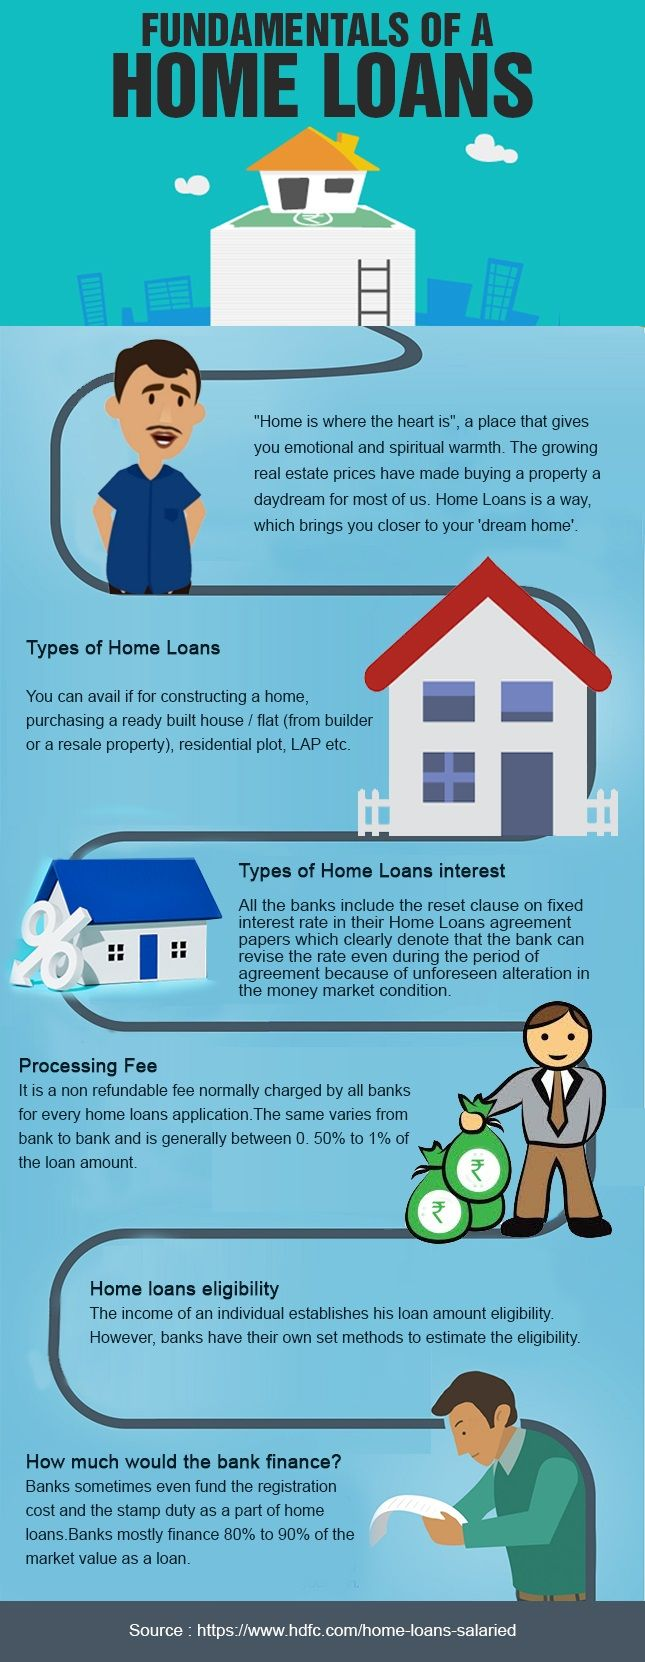 Home Loans at attractive interest rates from HDFC Home loans. Best home loan rates for women and salaried individuals. Avail home loans at low processing fees. For more details visit https://www.hdfc.com/home-loans-salaried